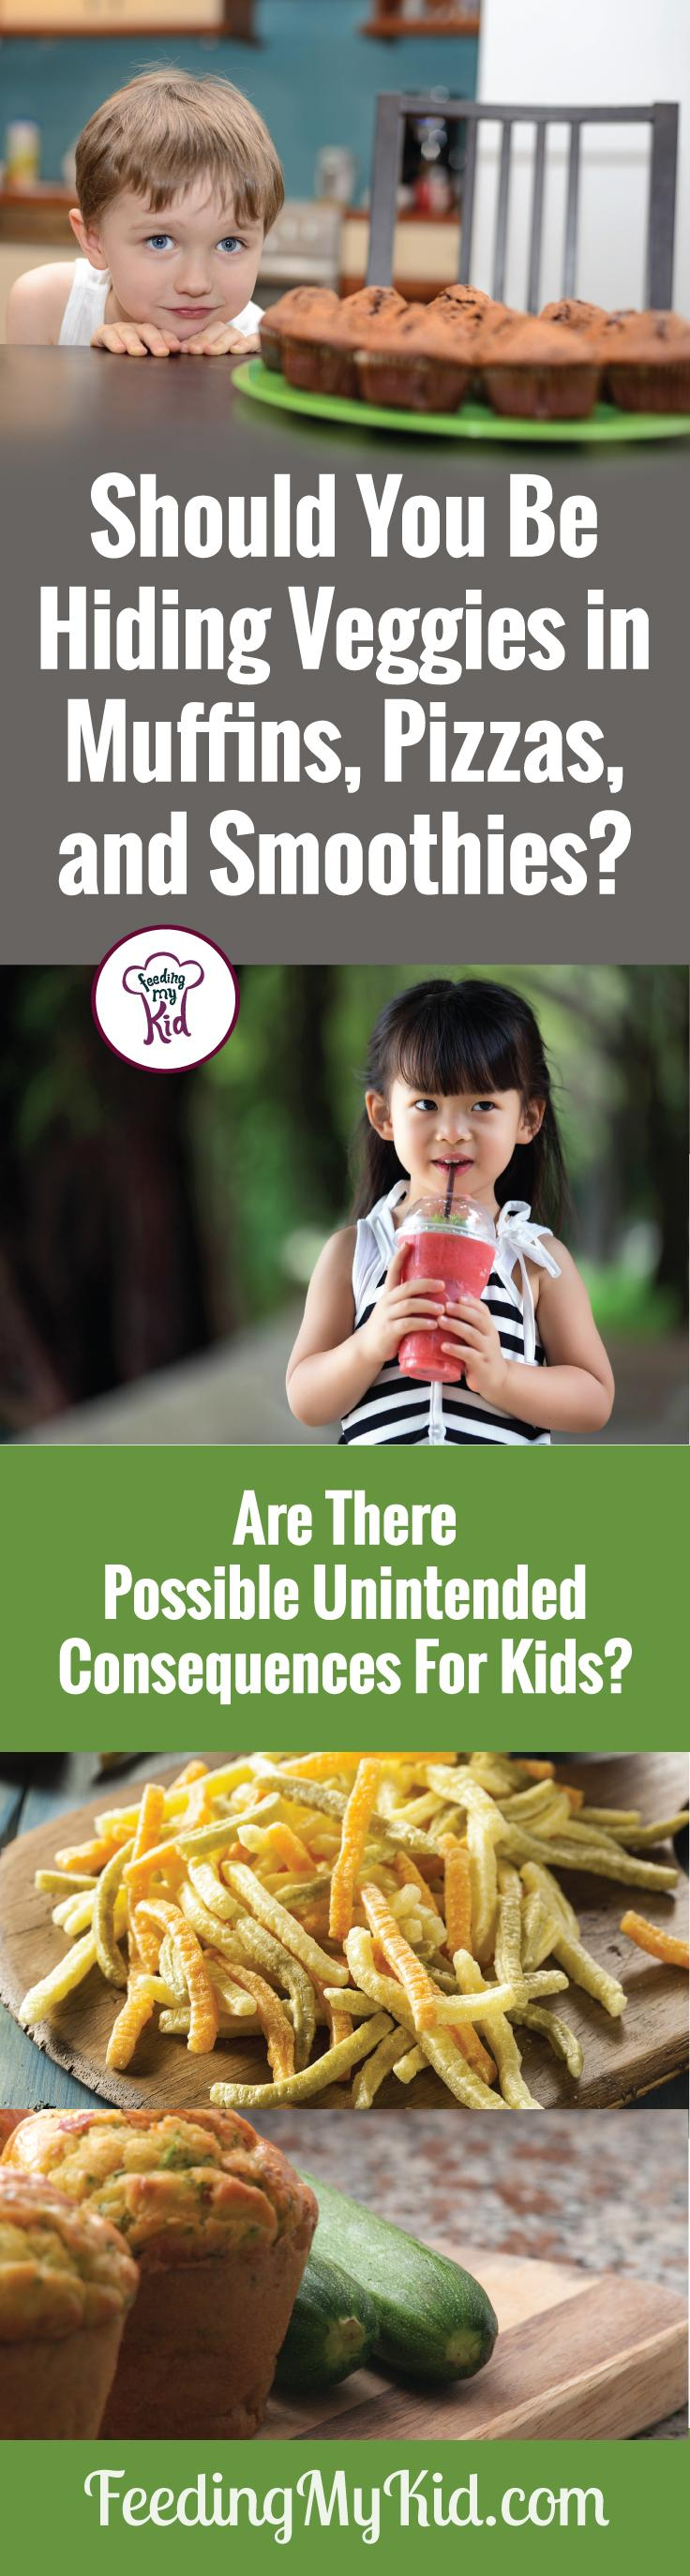 Find out what are some possible unintended consequences from hiding veggies in muffins, pizzas, smoothies, etc